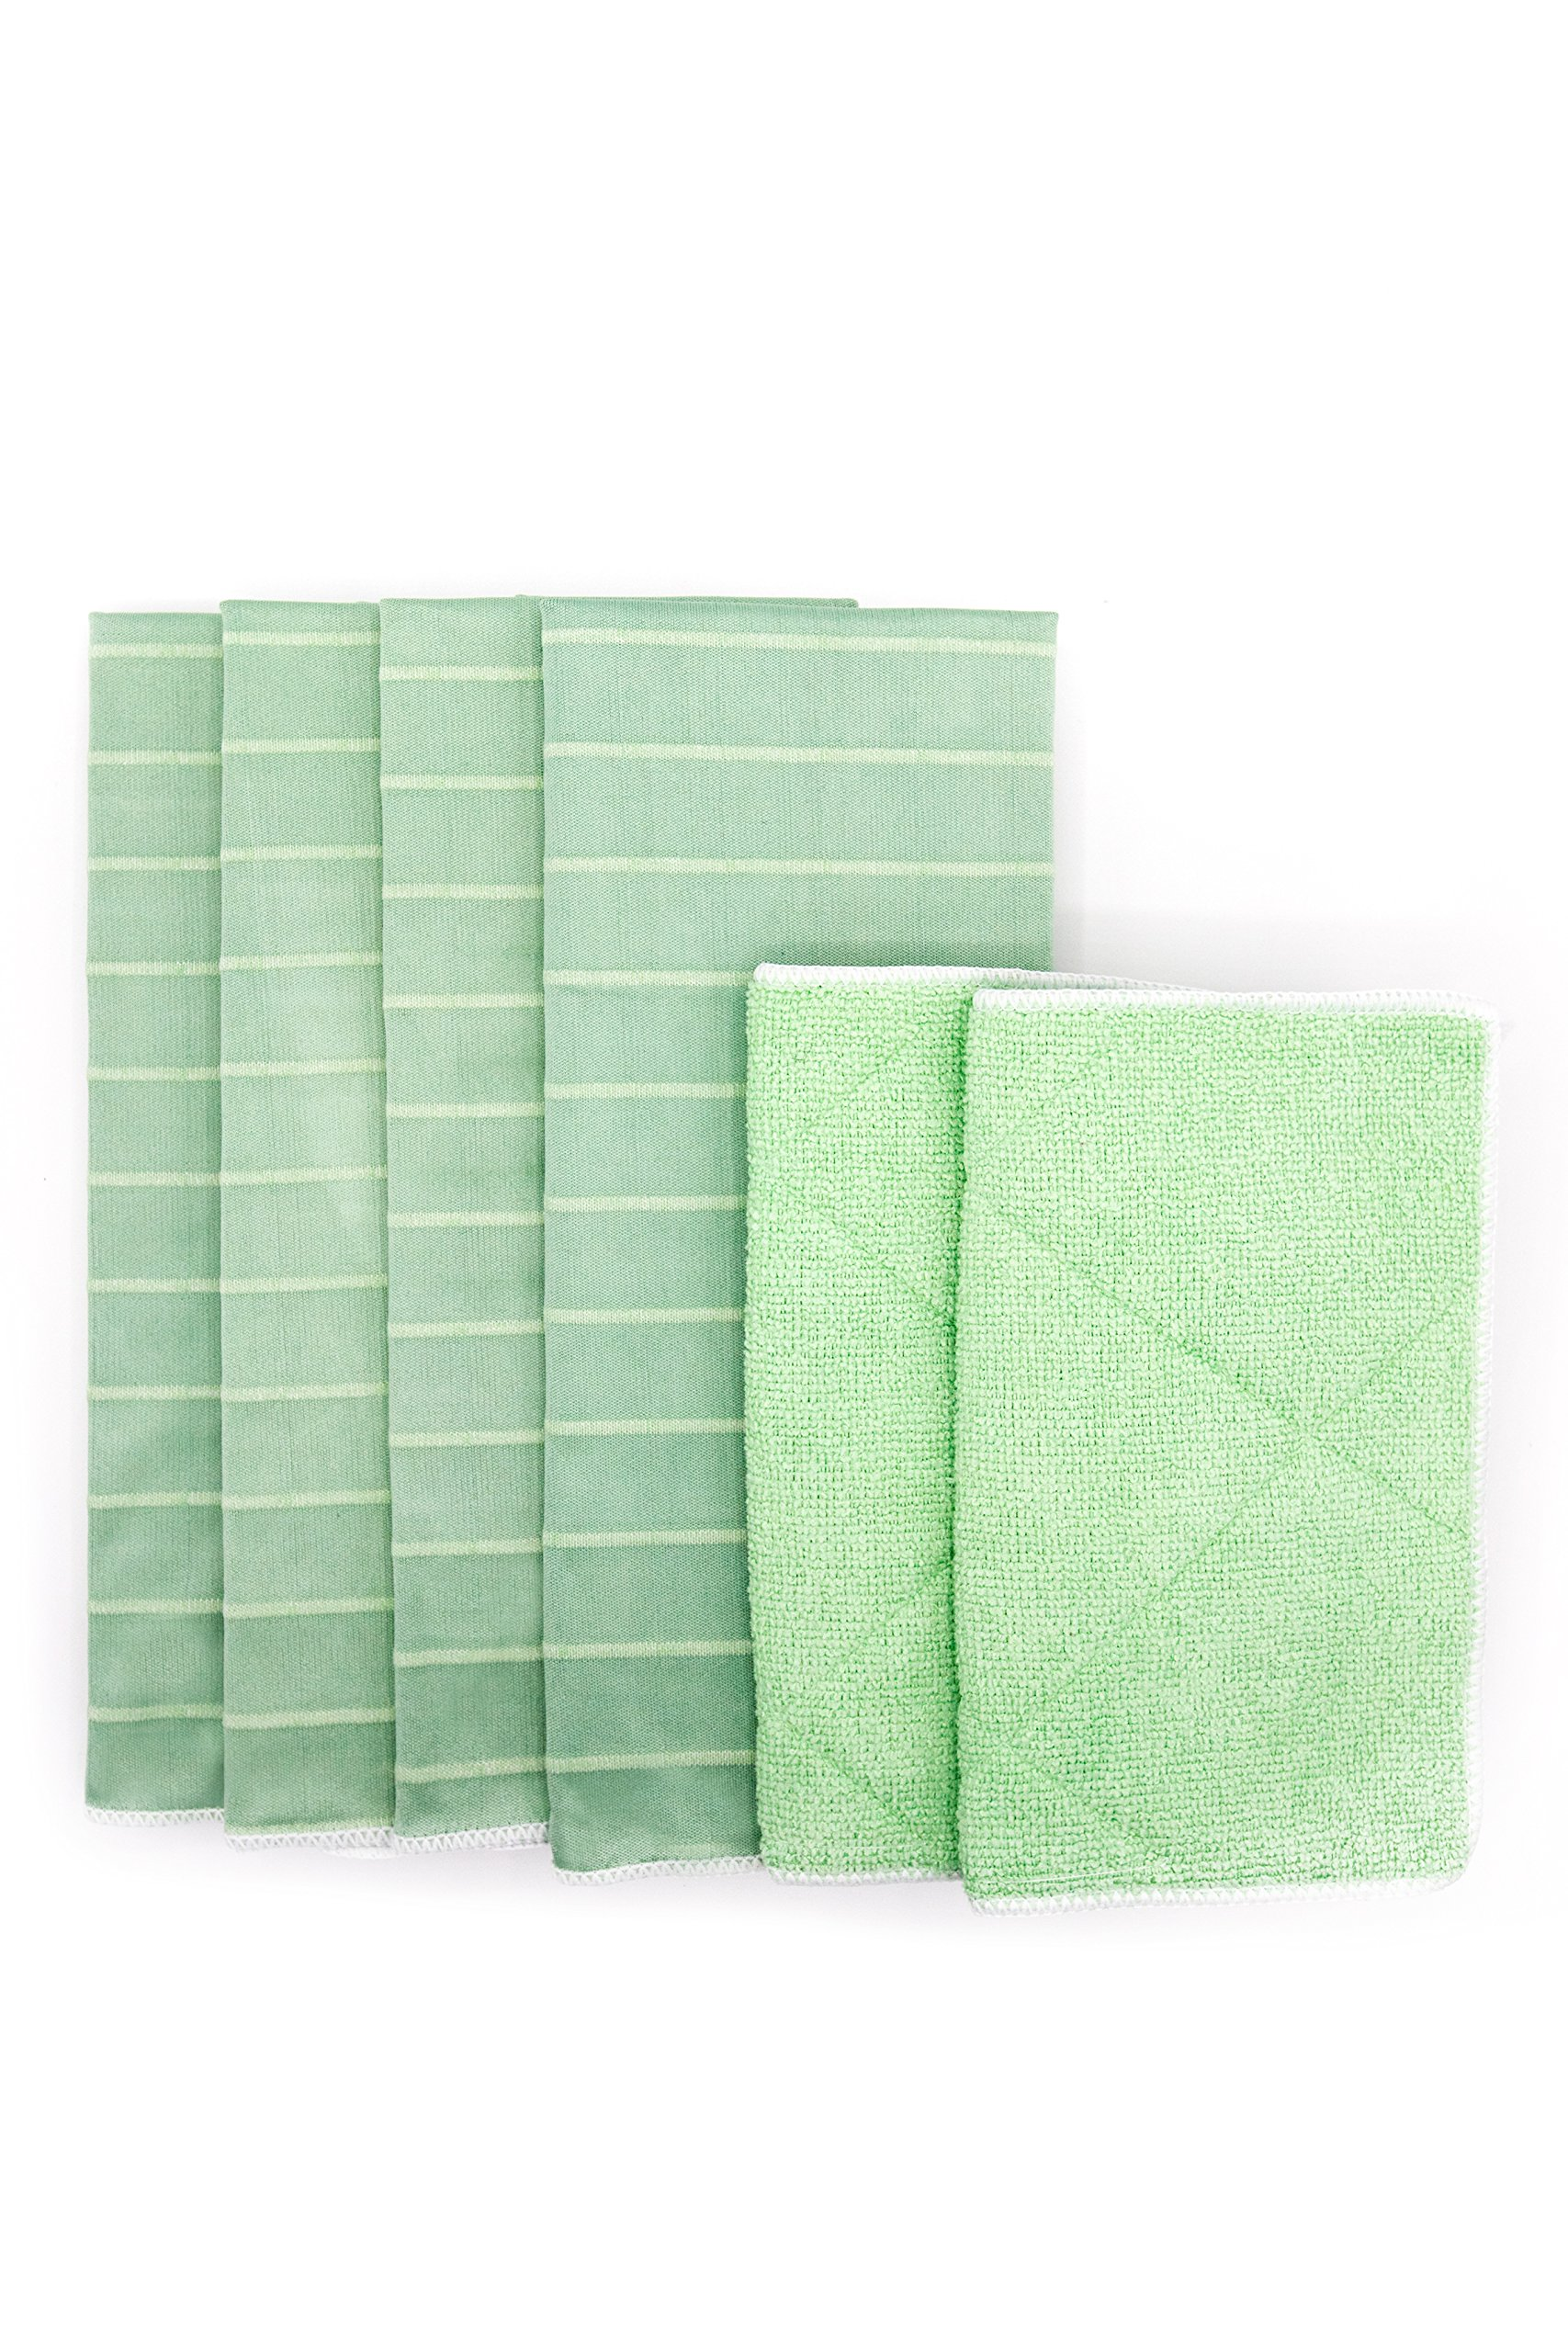 Angelgear Bamboo Microfiber Kitchen Dish Towels, Super Absorbent, Anti-Bacterial, Large 24'' x 16'' Inch 6 Pack Set!, Eco-Friendly, Quick Drying, All Purpose Household Cleaning, NO Lint, NO Streaks